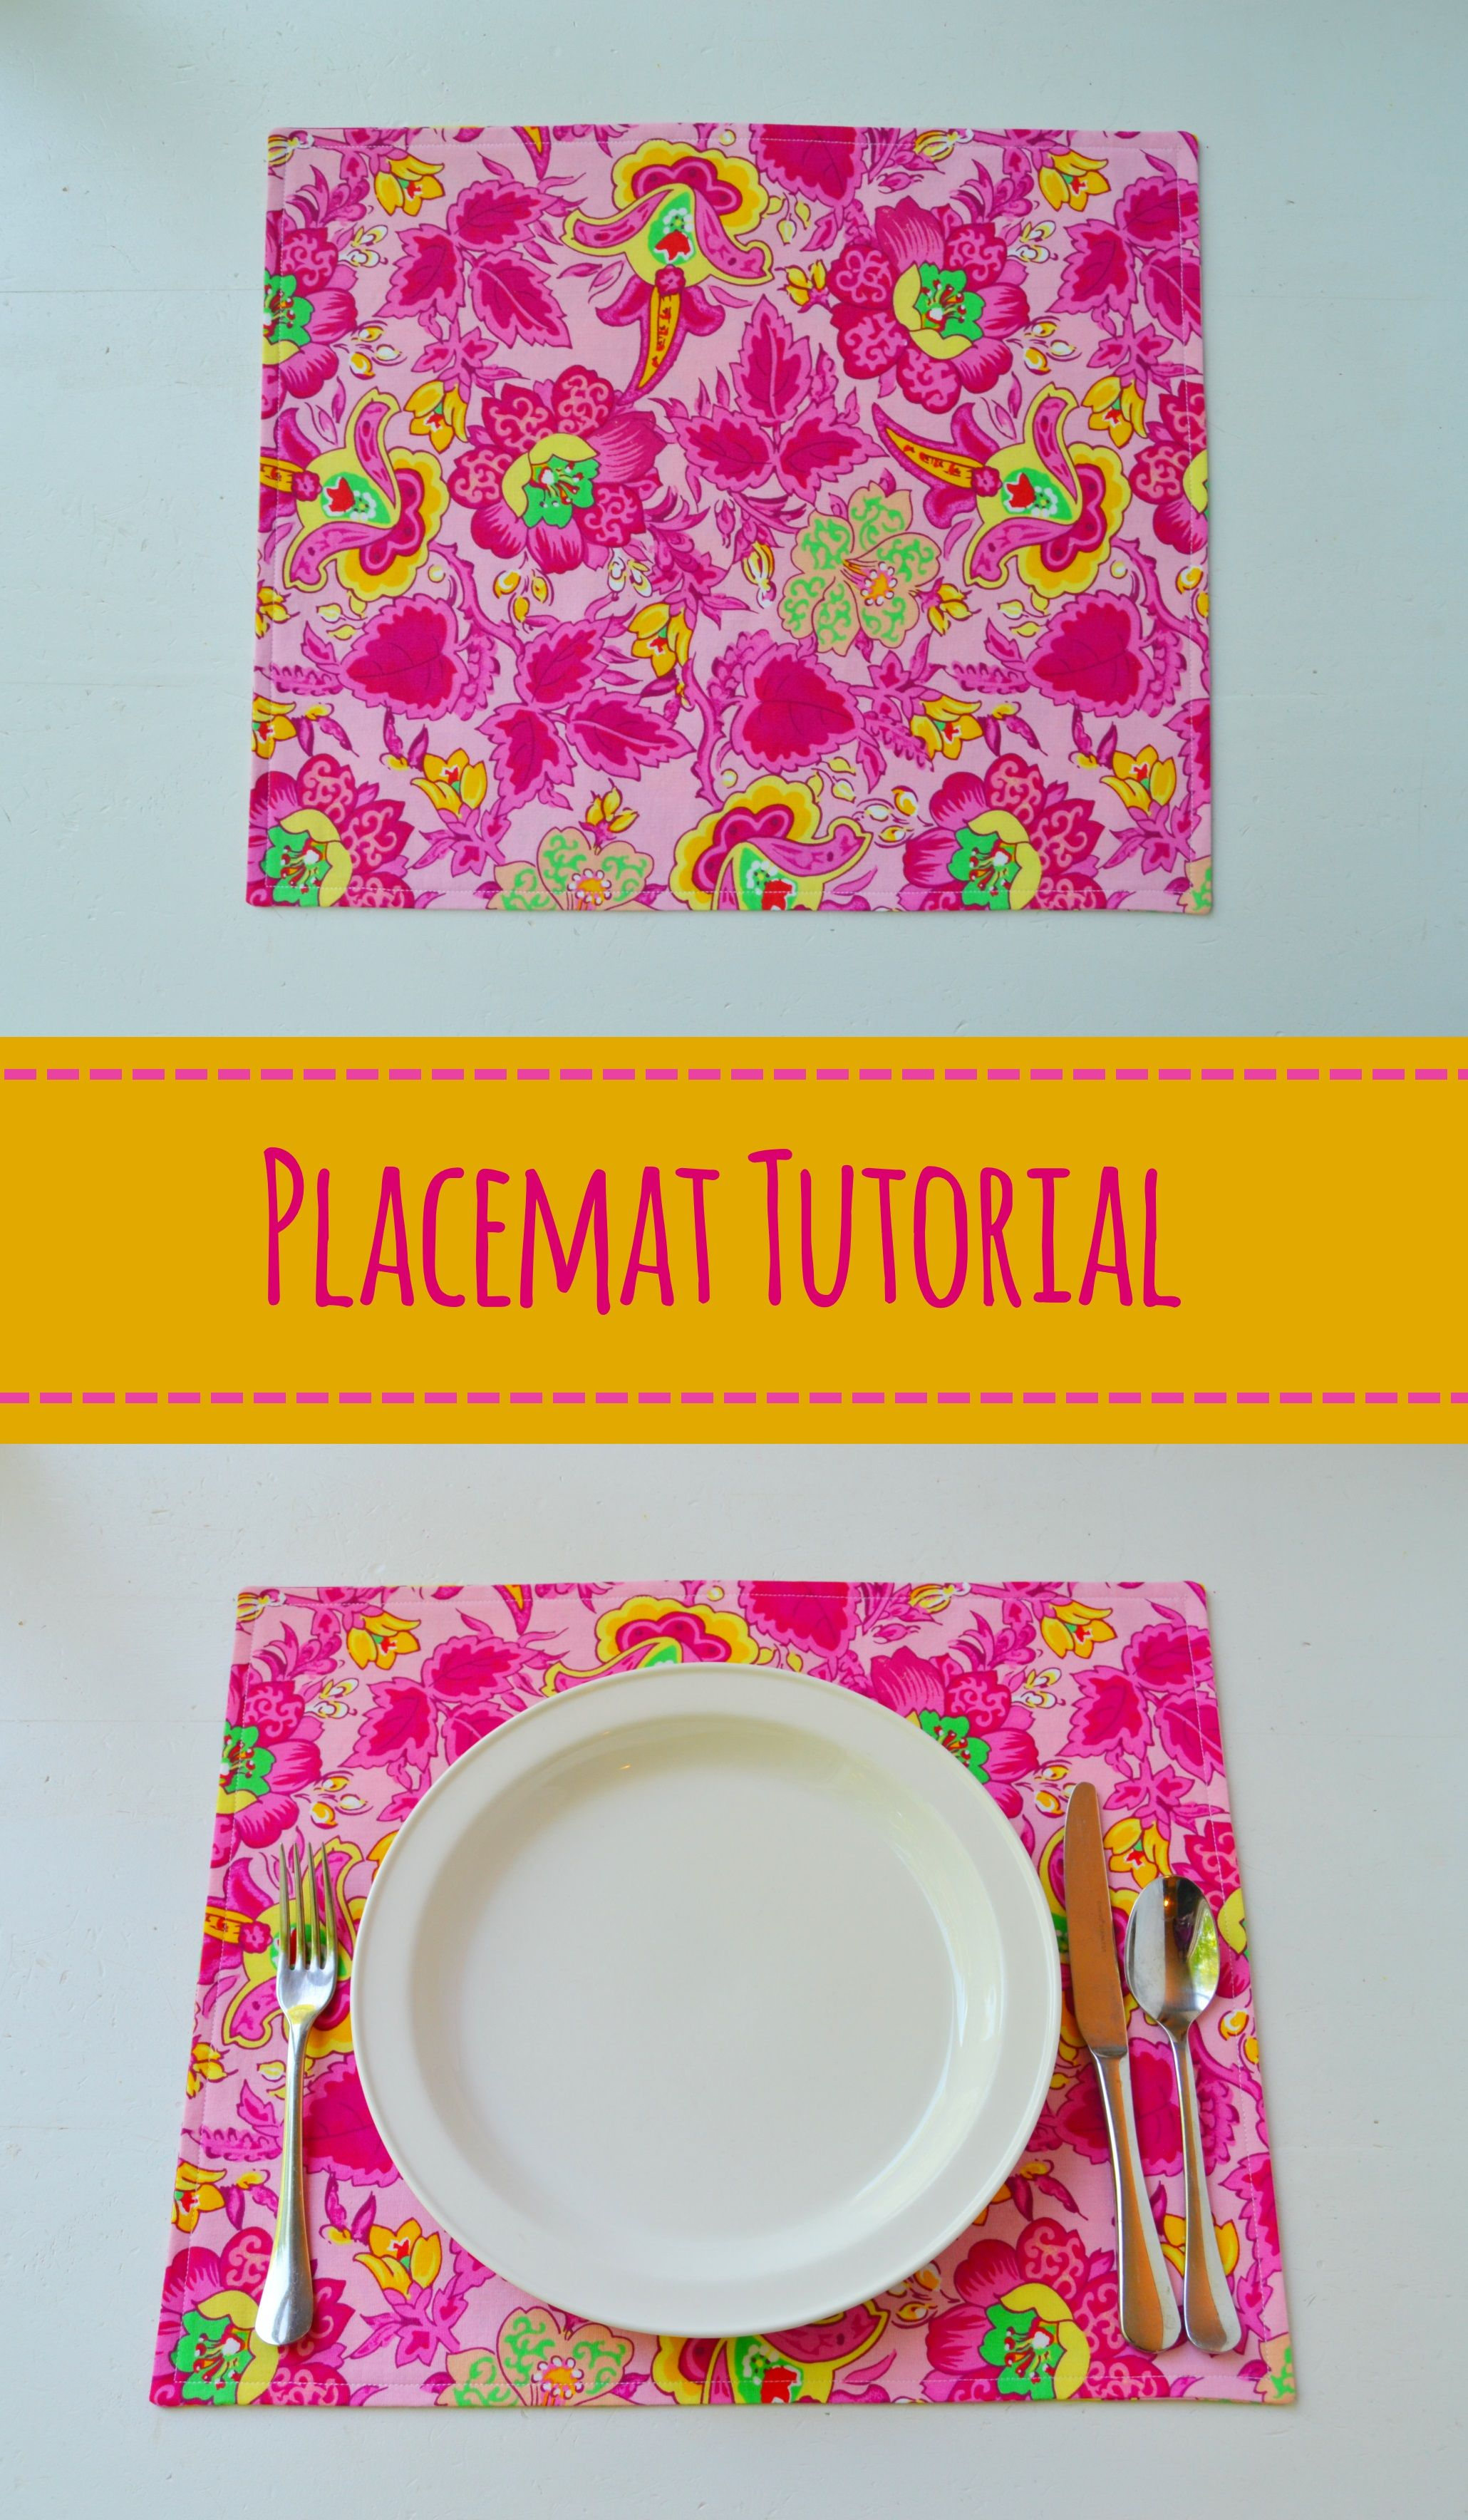 Placemats Are A Super Fun Way To Dress Up Your Table For A Special Meal Or Even Just To Add Some Nice C Sewing Basics Diy Placemats Fabric Easy Sewing Projects